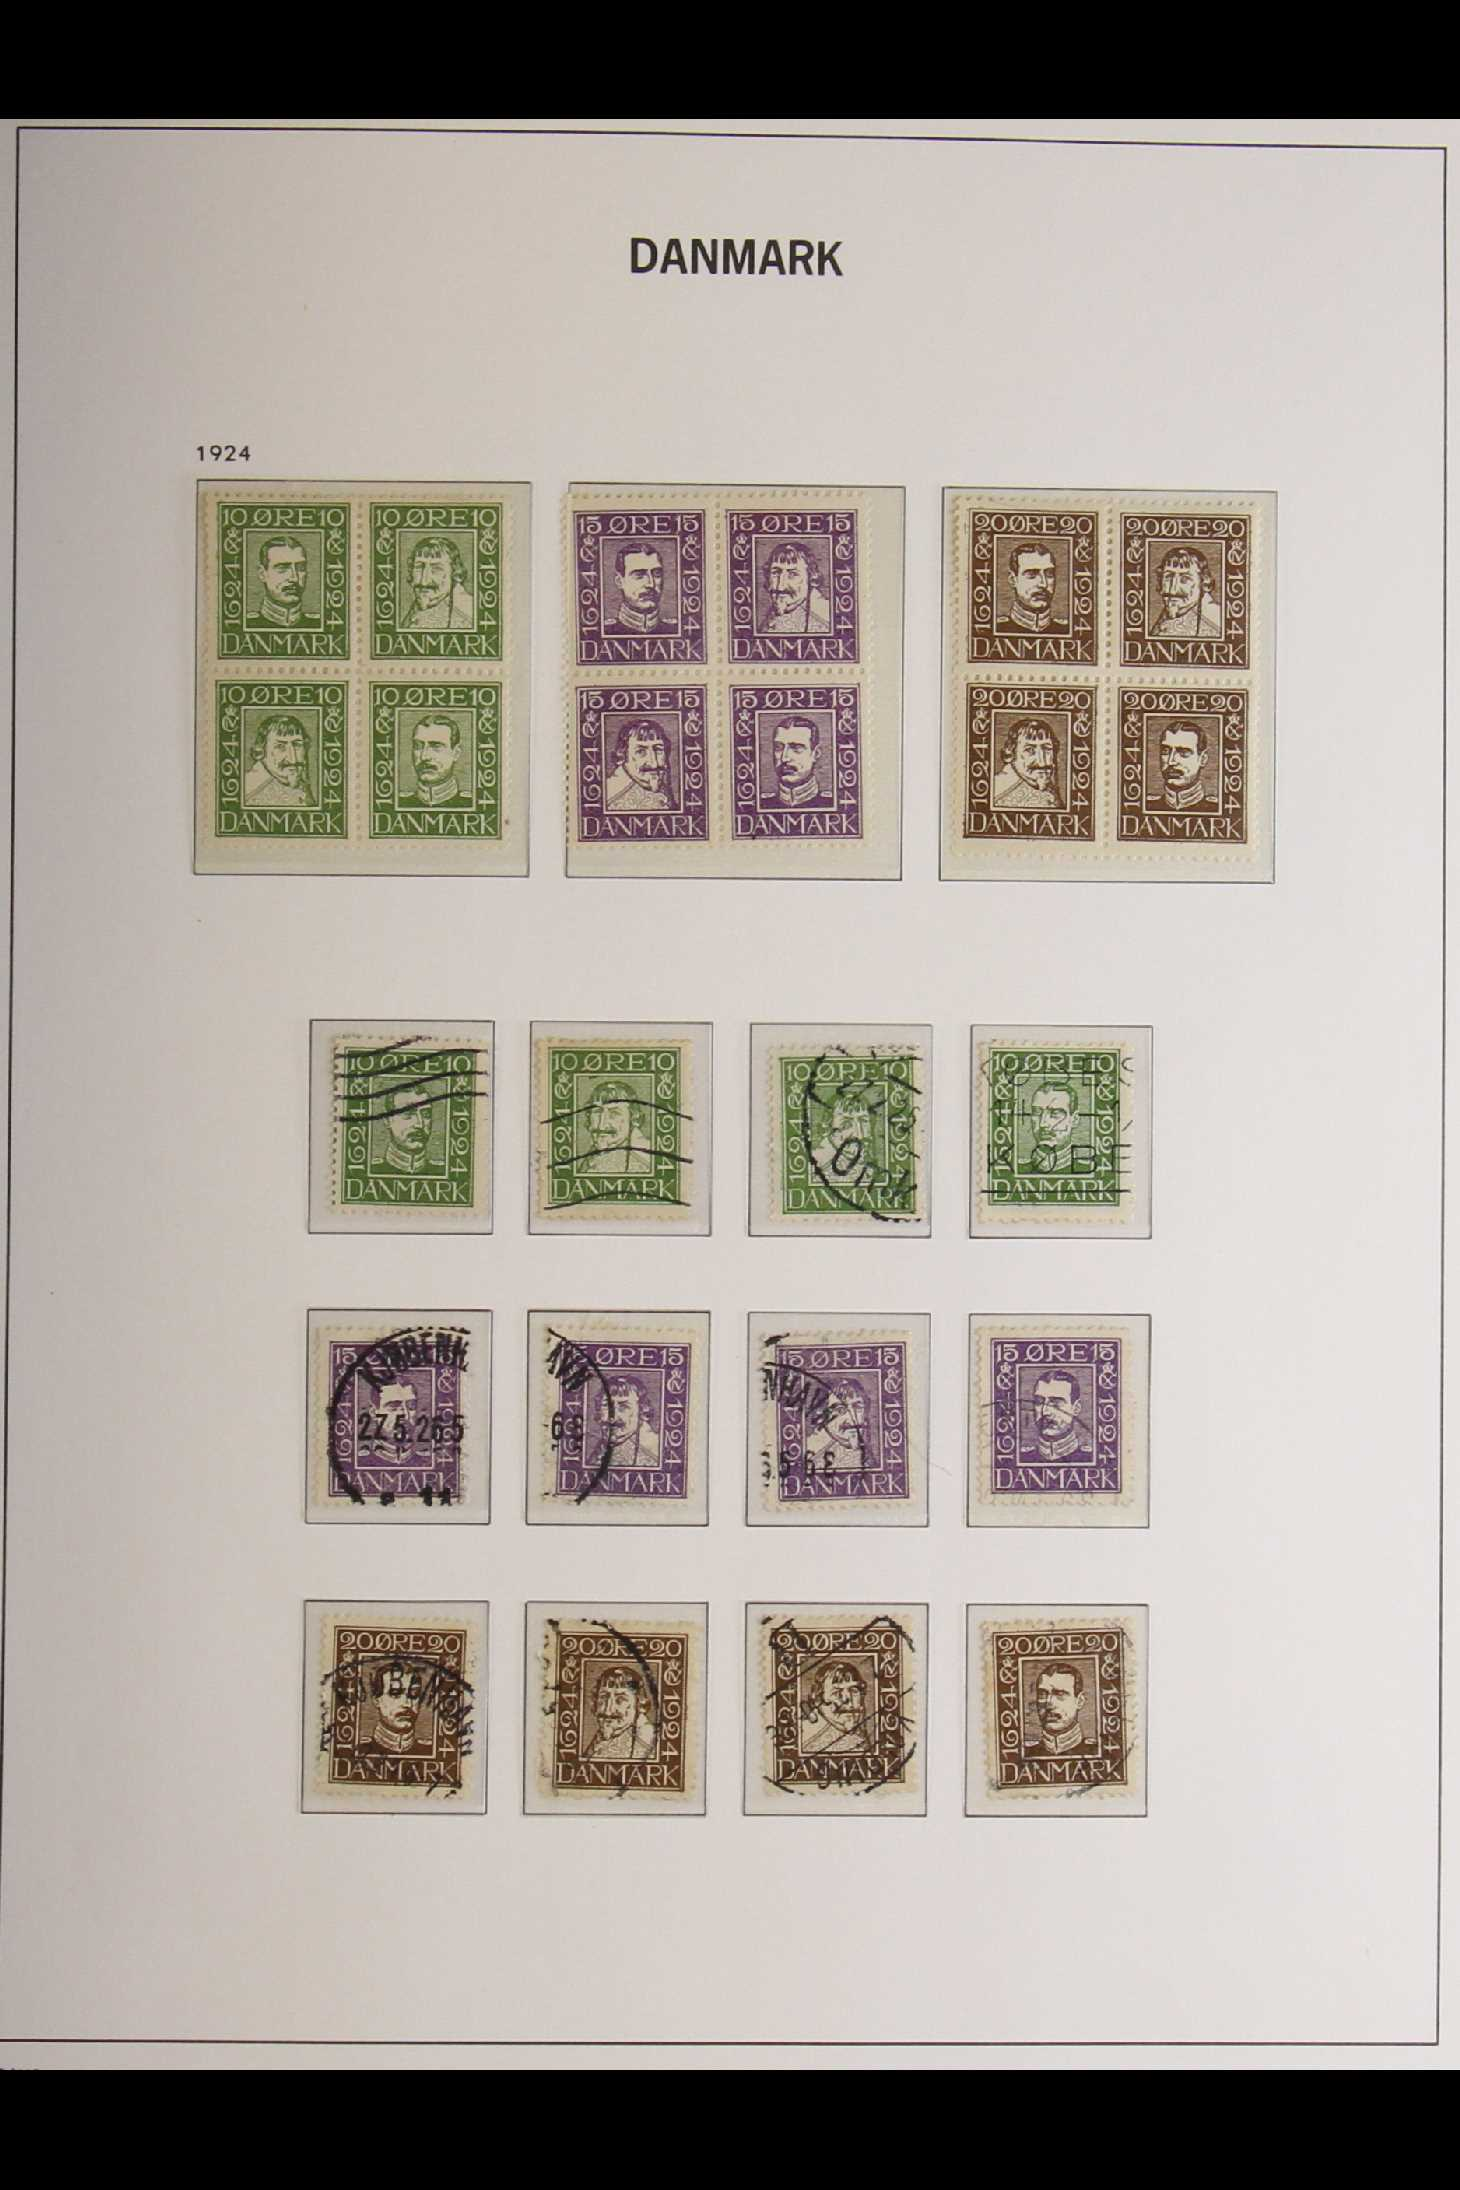 DENMARK 1882-1969 mint and used collection in an album incl. 1882 (small corner figures) 5 ore and - Image 5 of 15